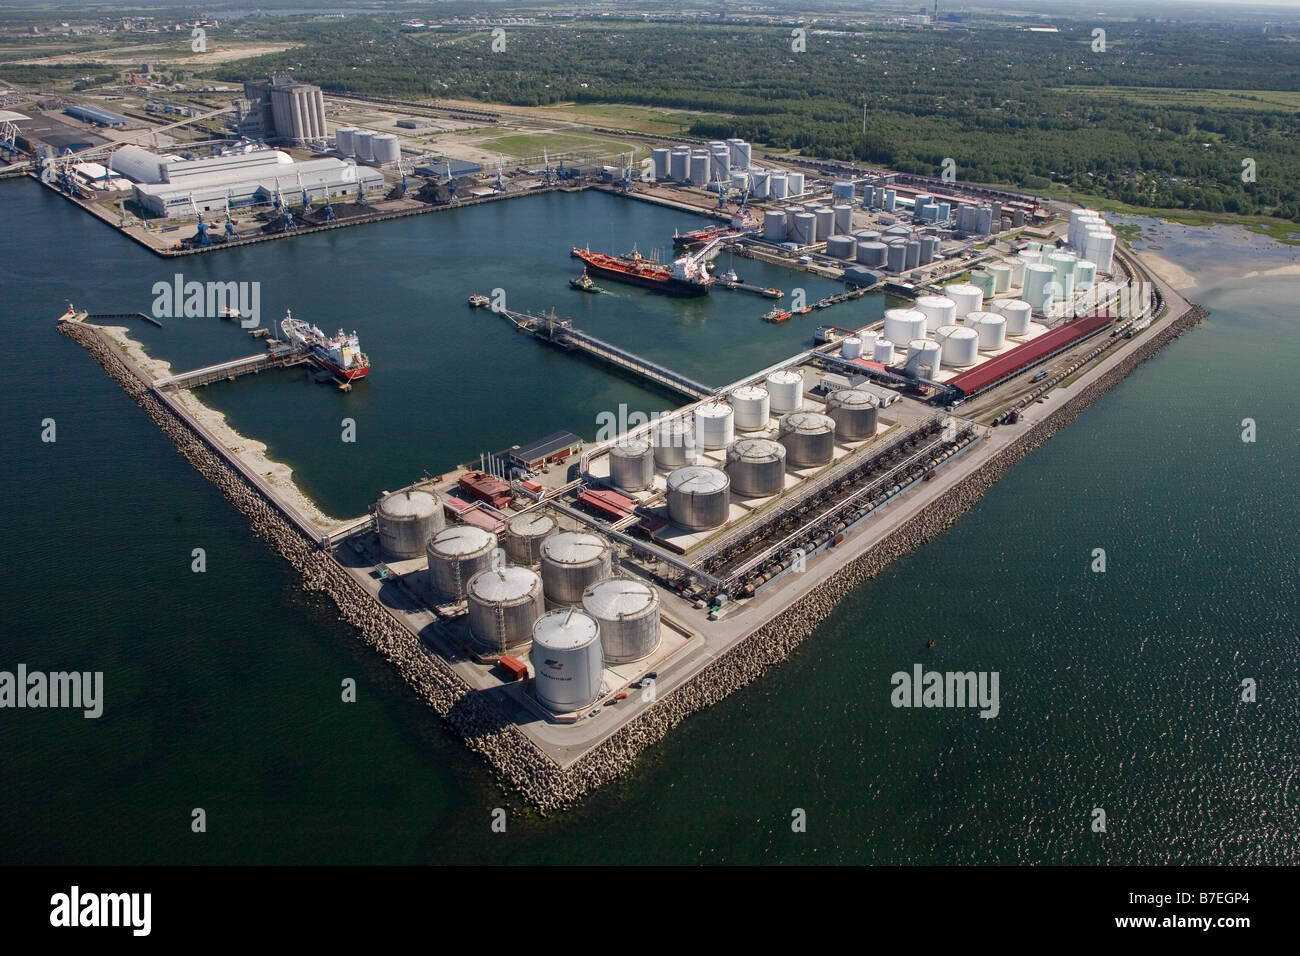 d8fb8af8cbc Port of Tallinn at Muuga, Estonia, Europe Stock Photo: 21833452 - Alamy